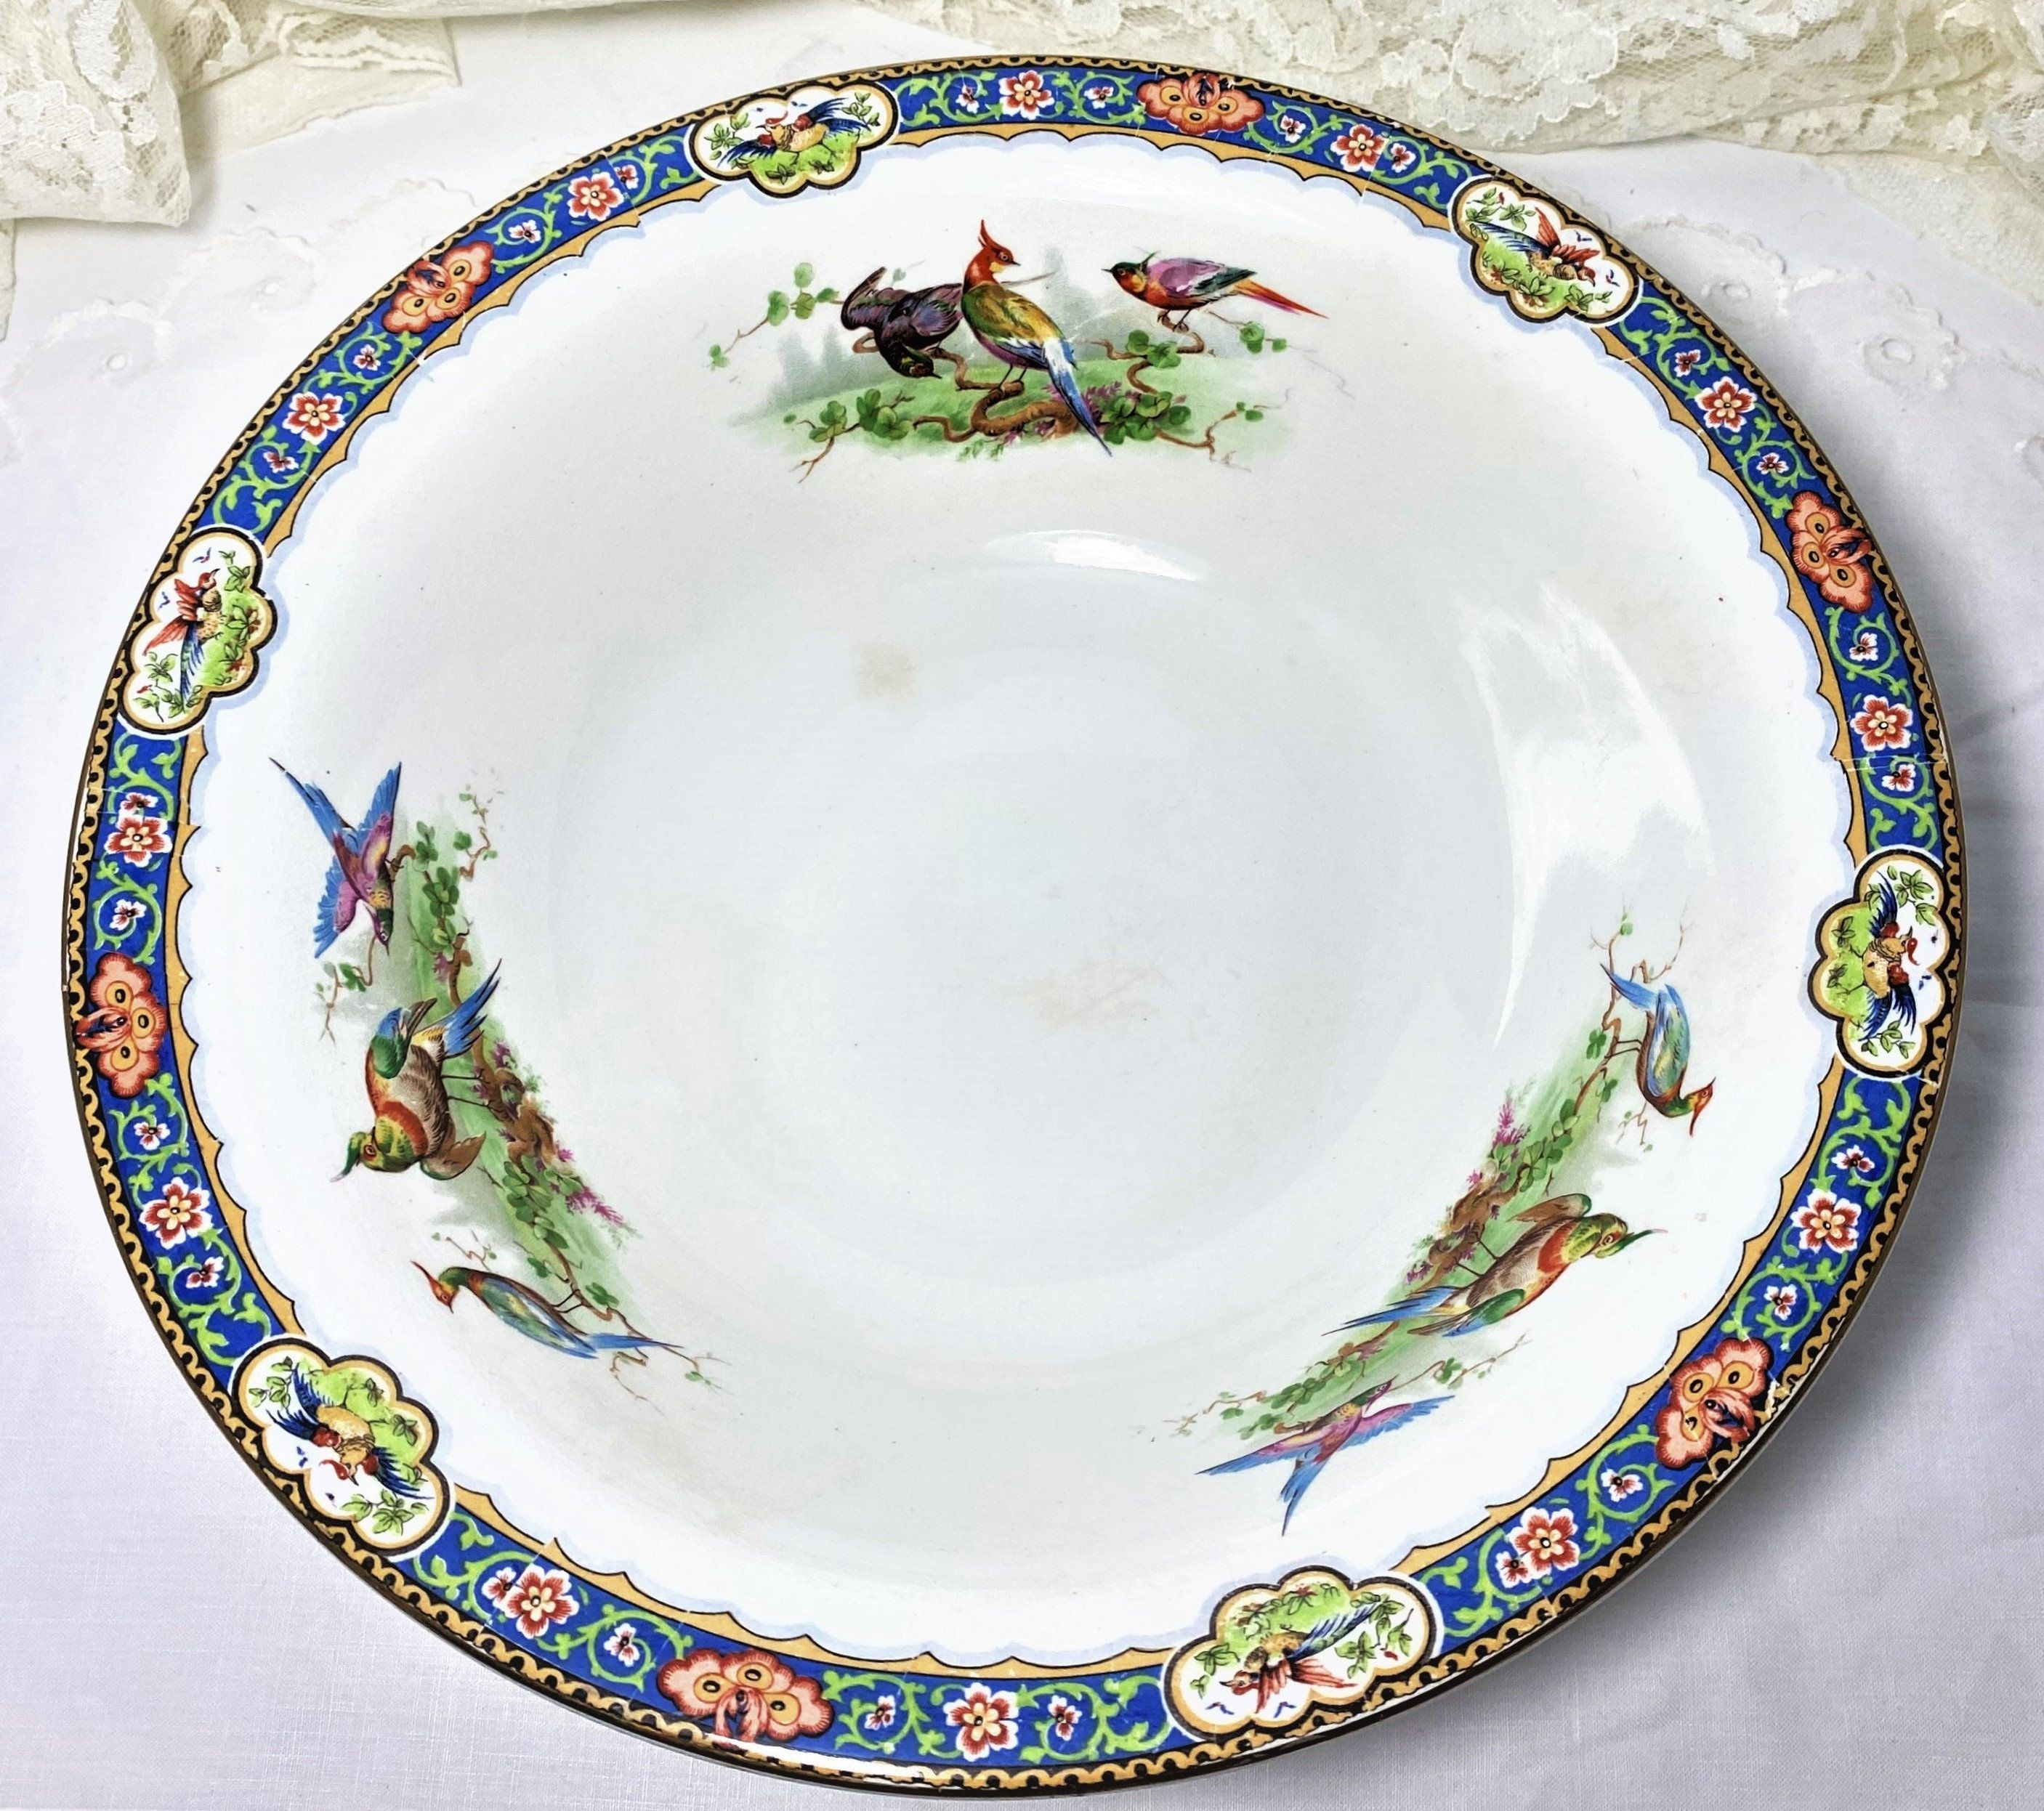 Made in Germany Filigree Plate Shabby Chic Reticulated Plate Ornate Schumann Decor Plate with Lots of Colorful Flowers